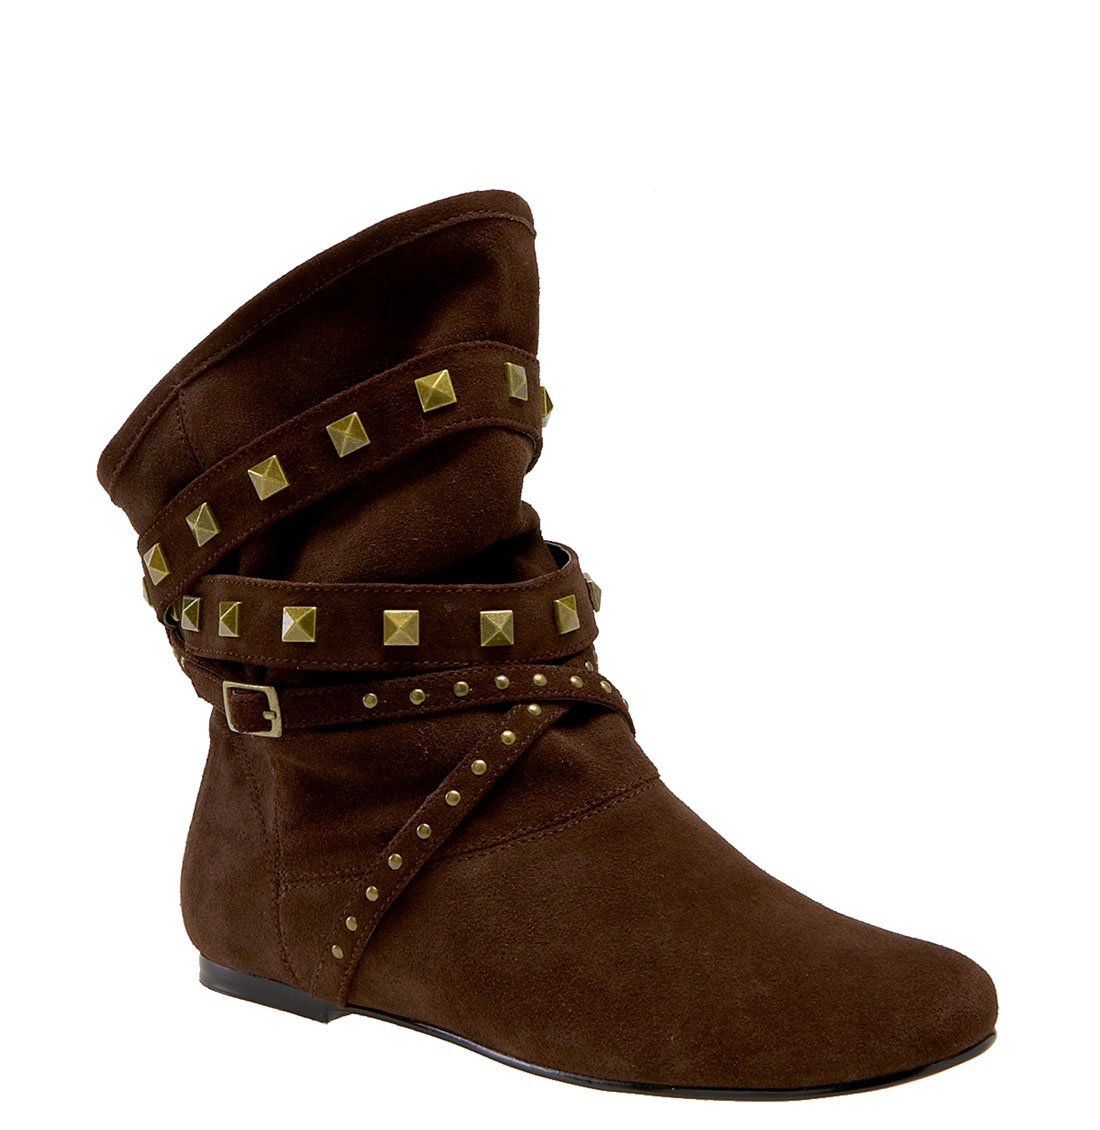 steve madden stutter boot in brown brown suede lyst